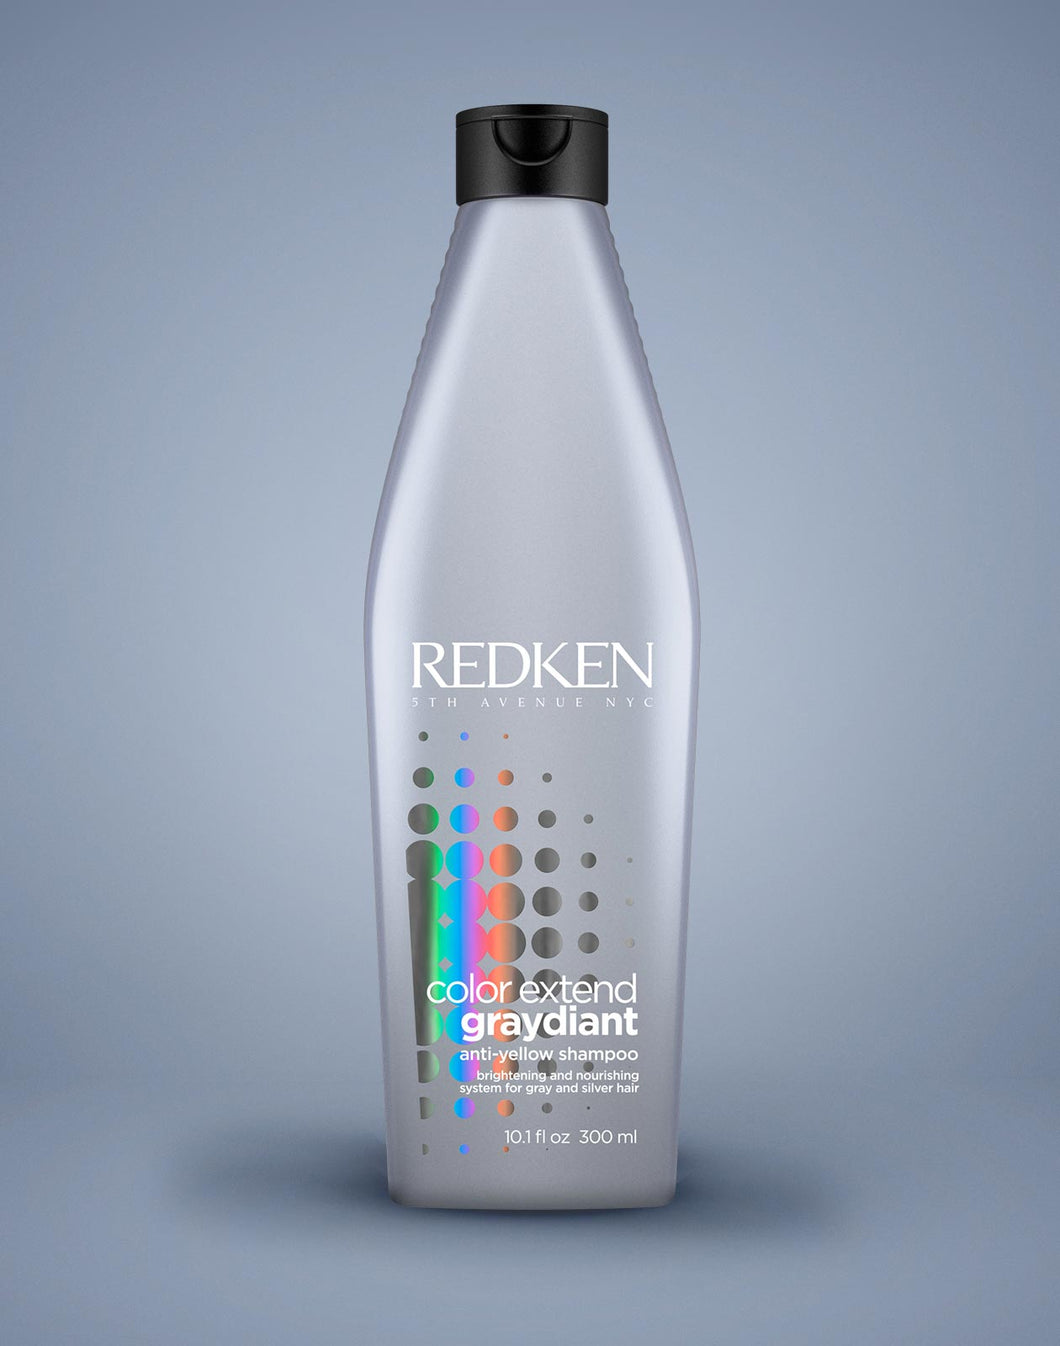 Redken COLOR EXTEND GRAYDIANT SHAMPOO FOR GRAY HAIR - The Color Studio & Salon